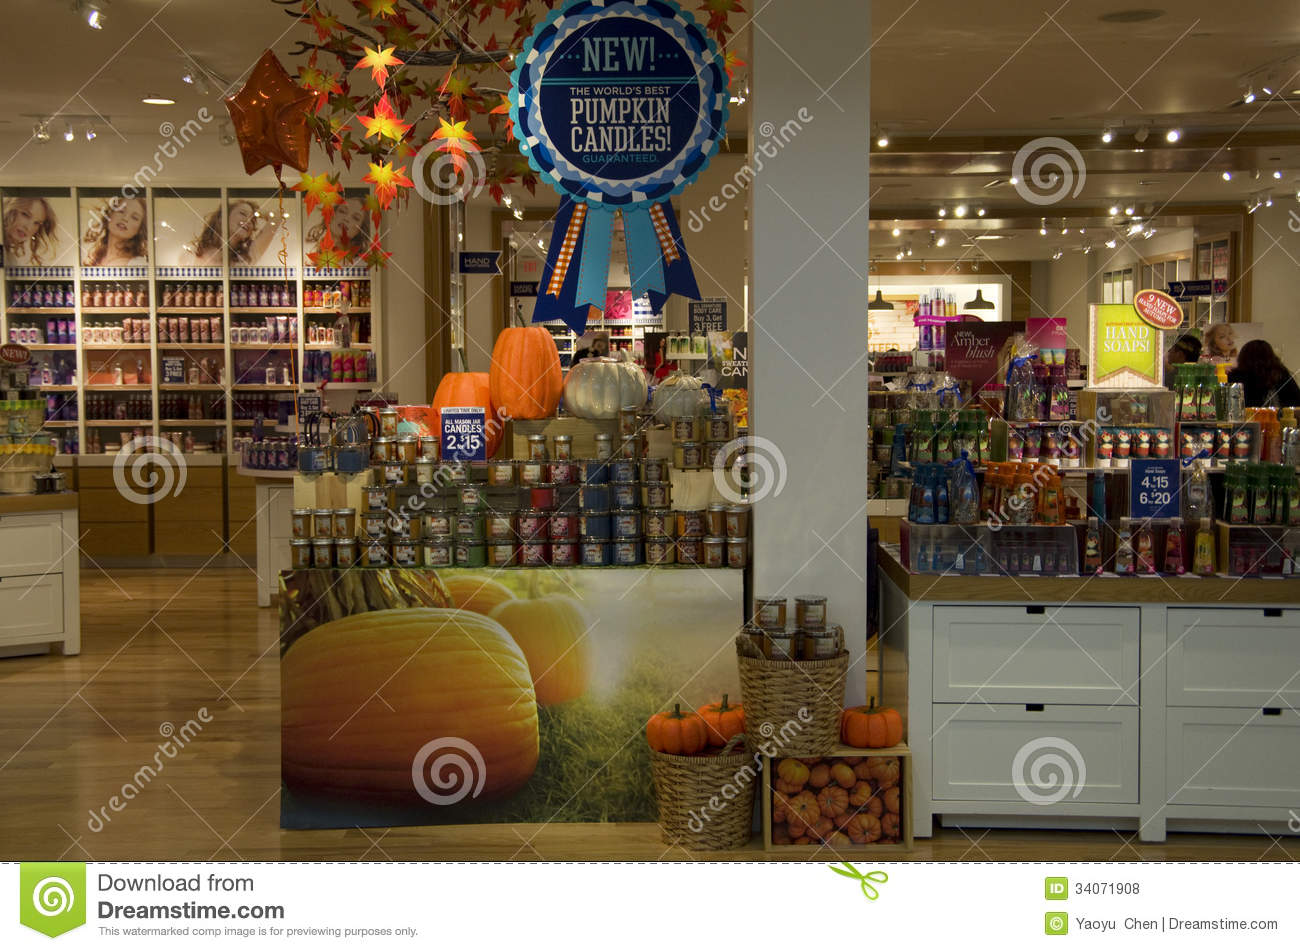 Candles halloween decorations store editorial stock photo - Home decor stores in charlotte nc image ...